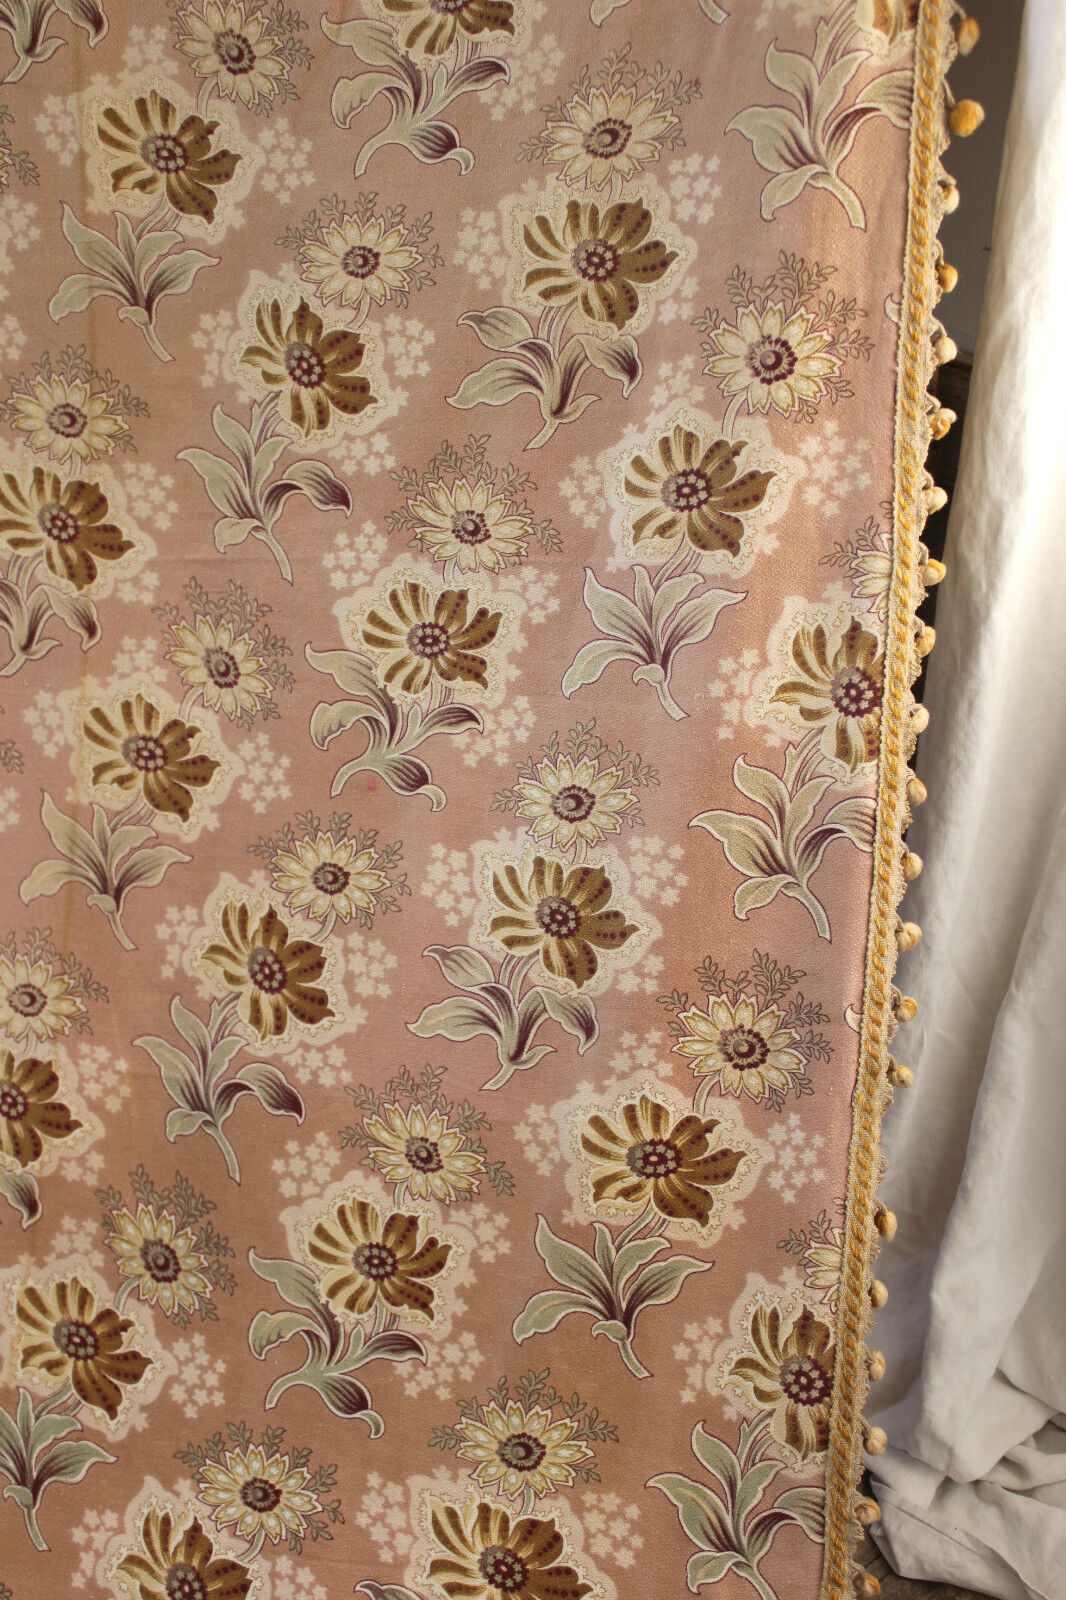 Large Fabric Panels : Antique french art nouveau fabric large curtain panel with